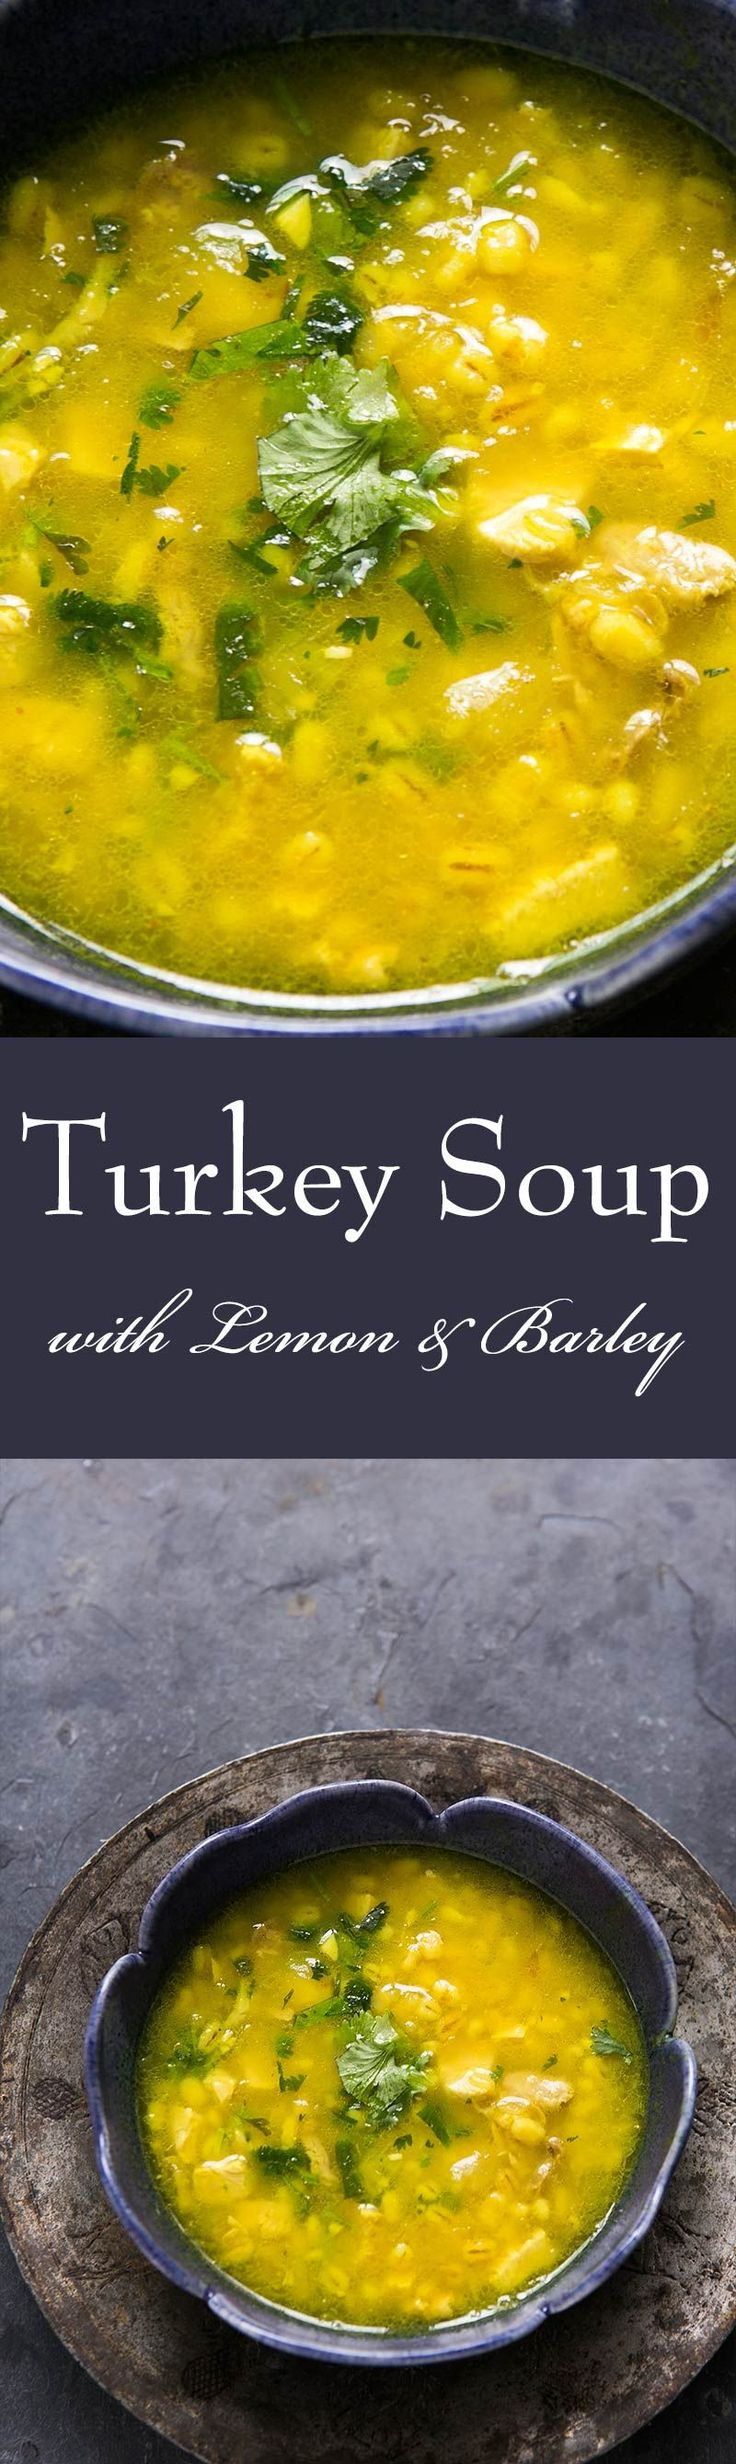 way to make soup with leftover turkey! Lemon and Barley Turkey Soup ...